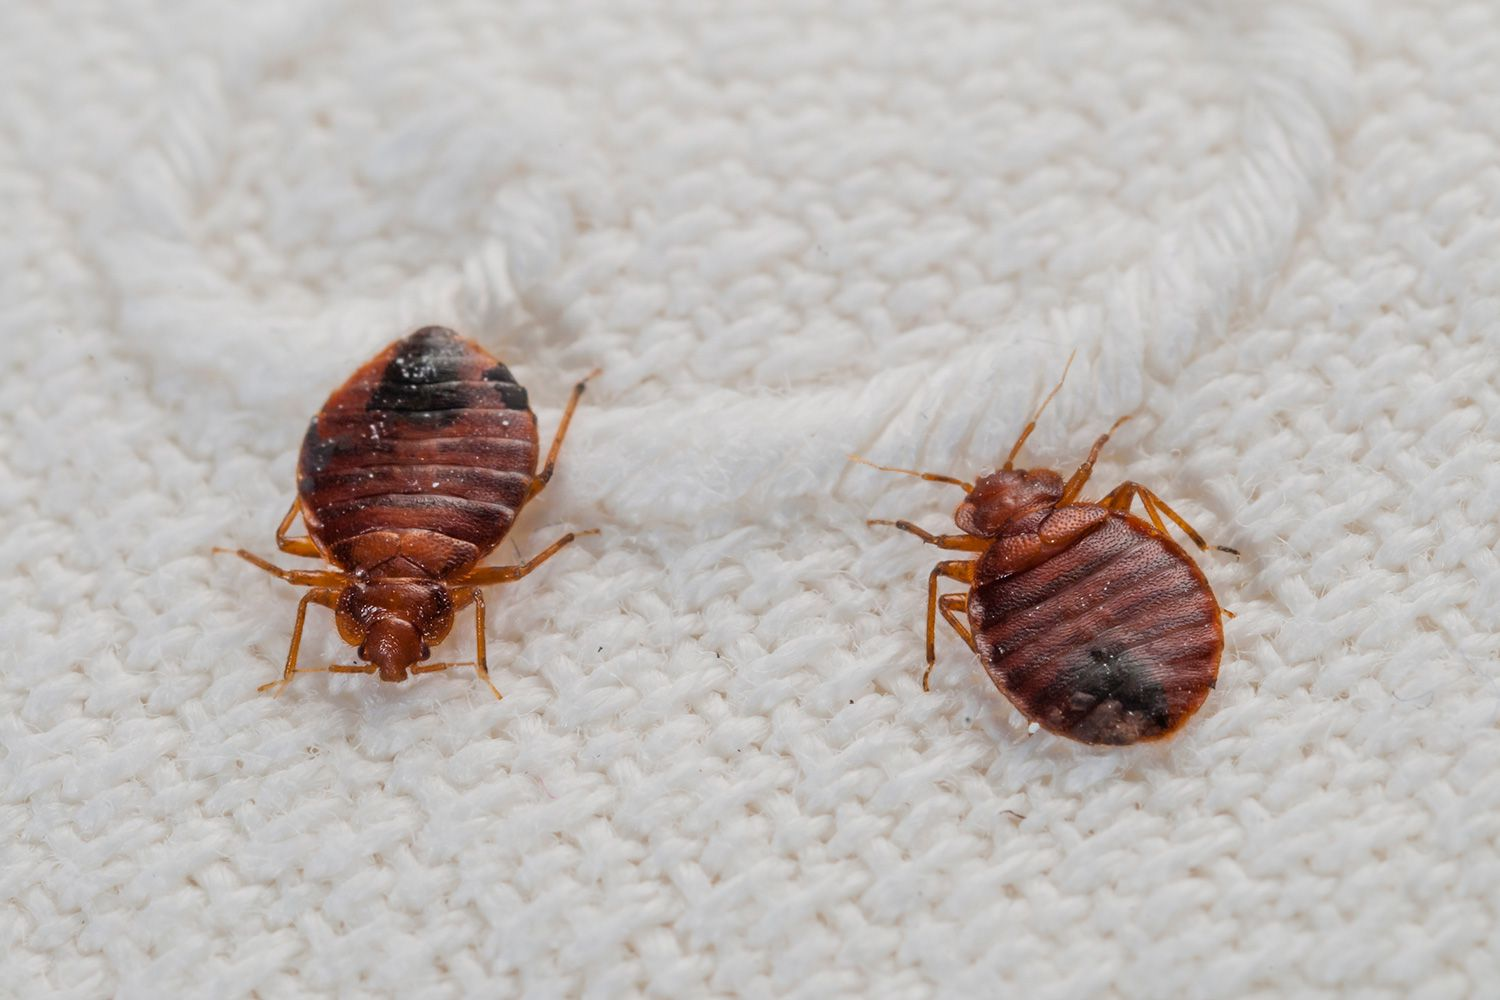 10 Myths About Bed Bugs. What Are These Tiny Black Bugs in My House